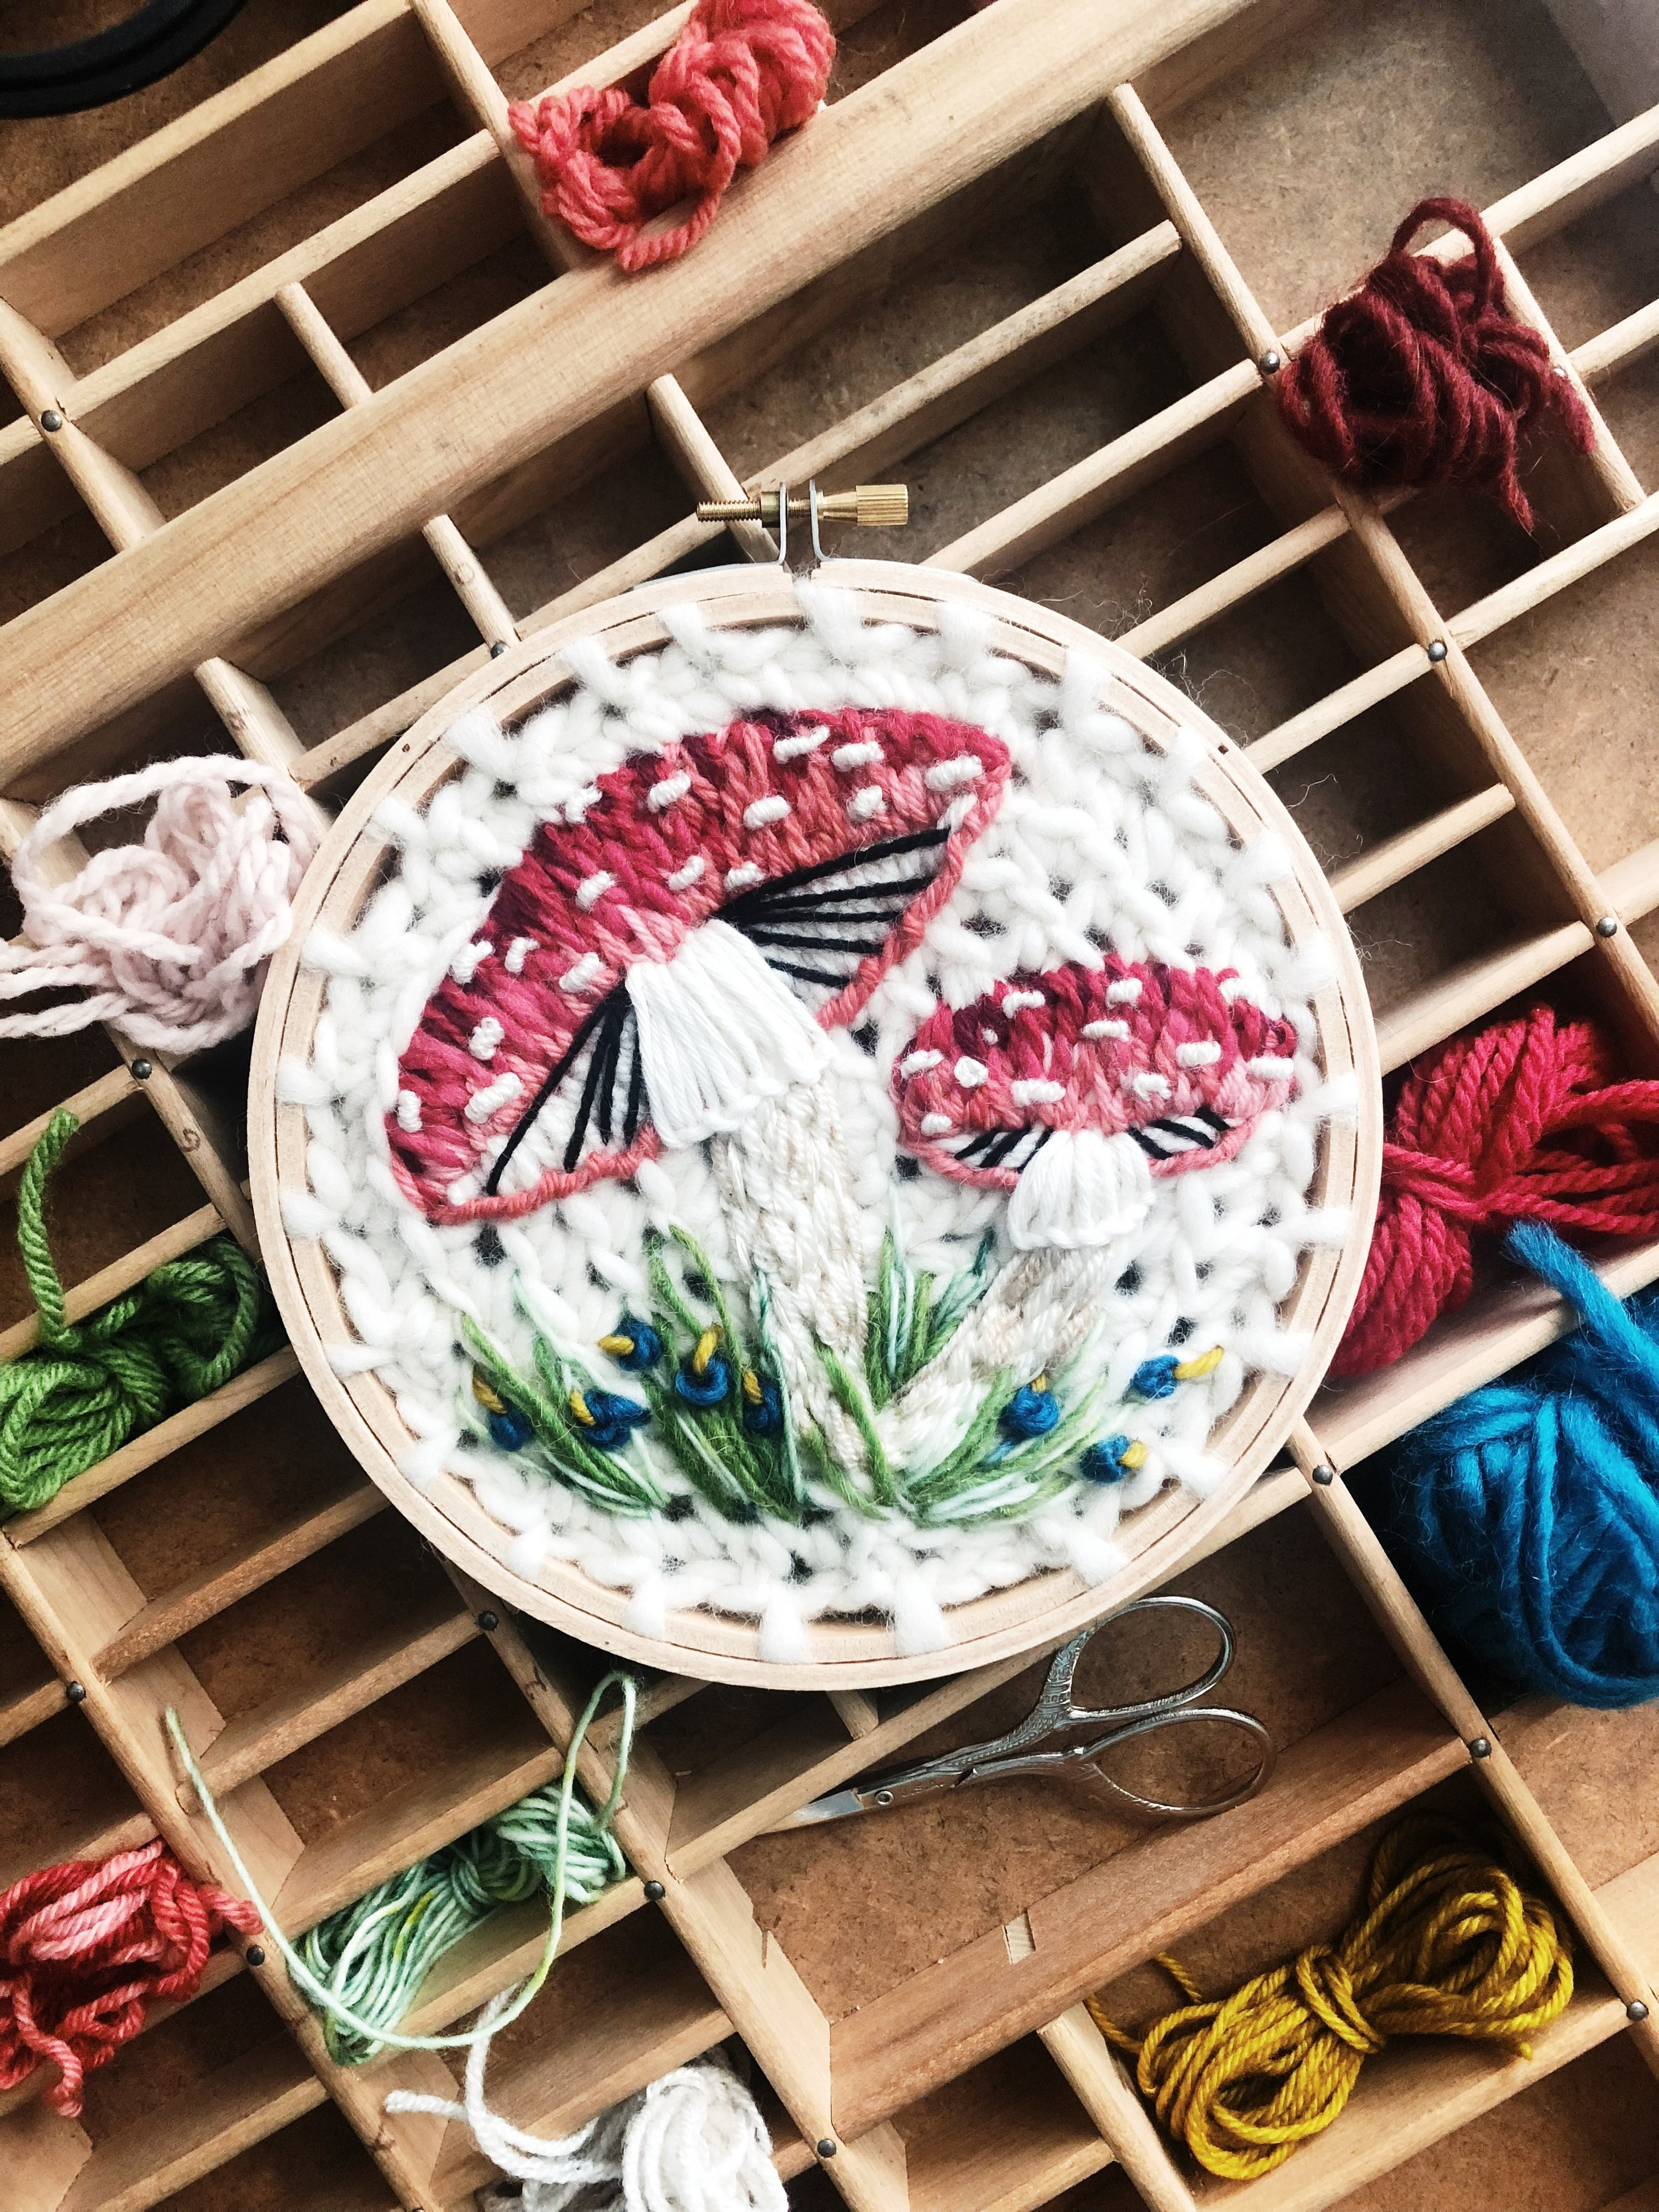 oandystudio.fly.amanita.muscaria.mushroom.toadstool.wall.hanging.embroidery.hoop.crewel.tapestry.crochet